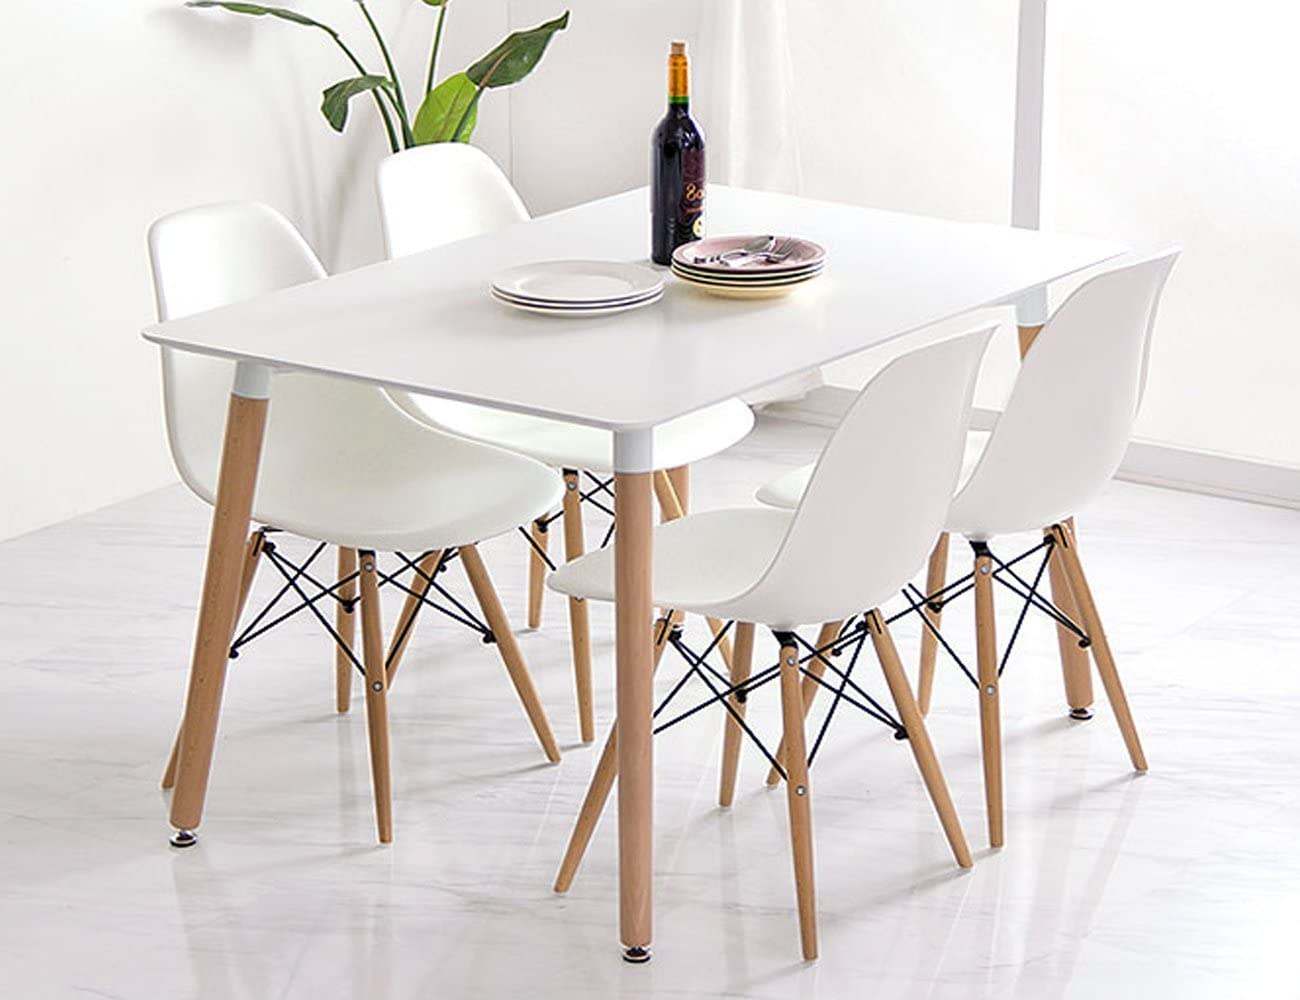 Woopi Conjunto de Mesa 120 + 4 sillas Tower: Amazon.es: Juguetes y ...